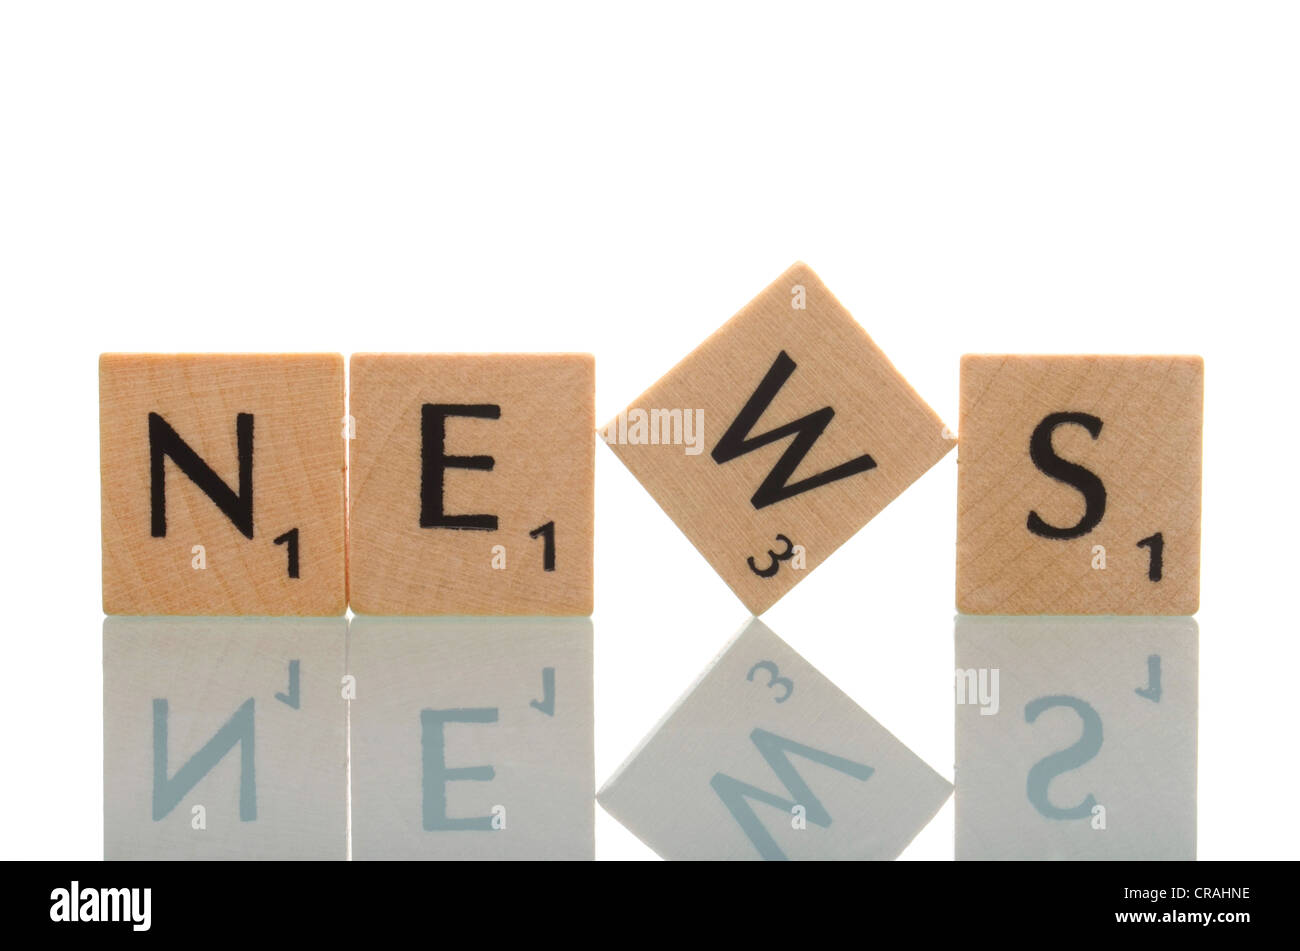 Letter tiles forming the word News - Stock Image